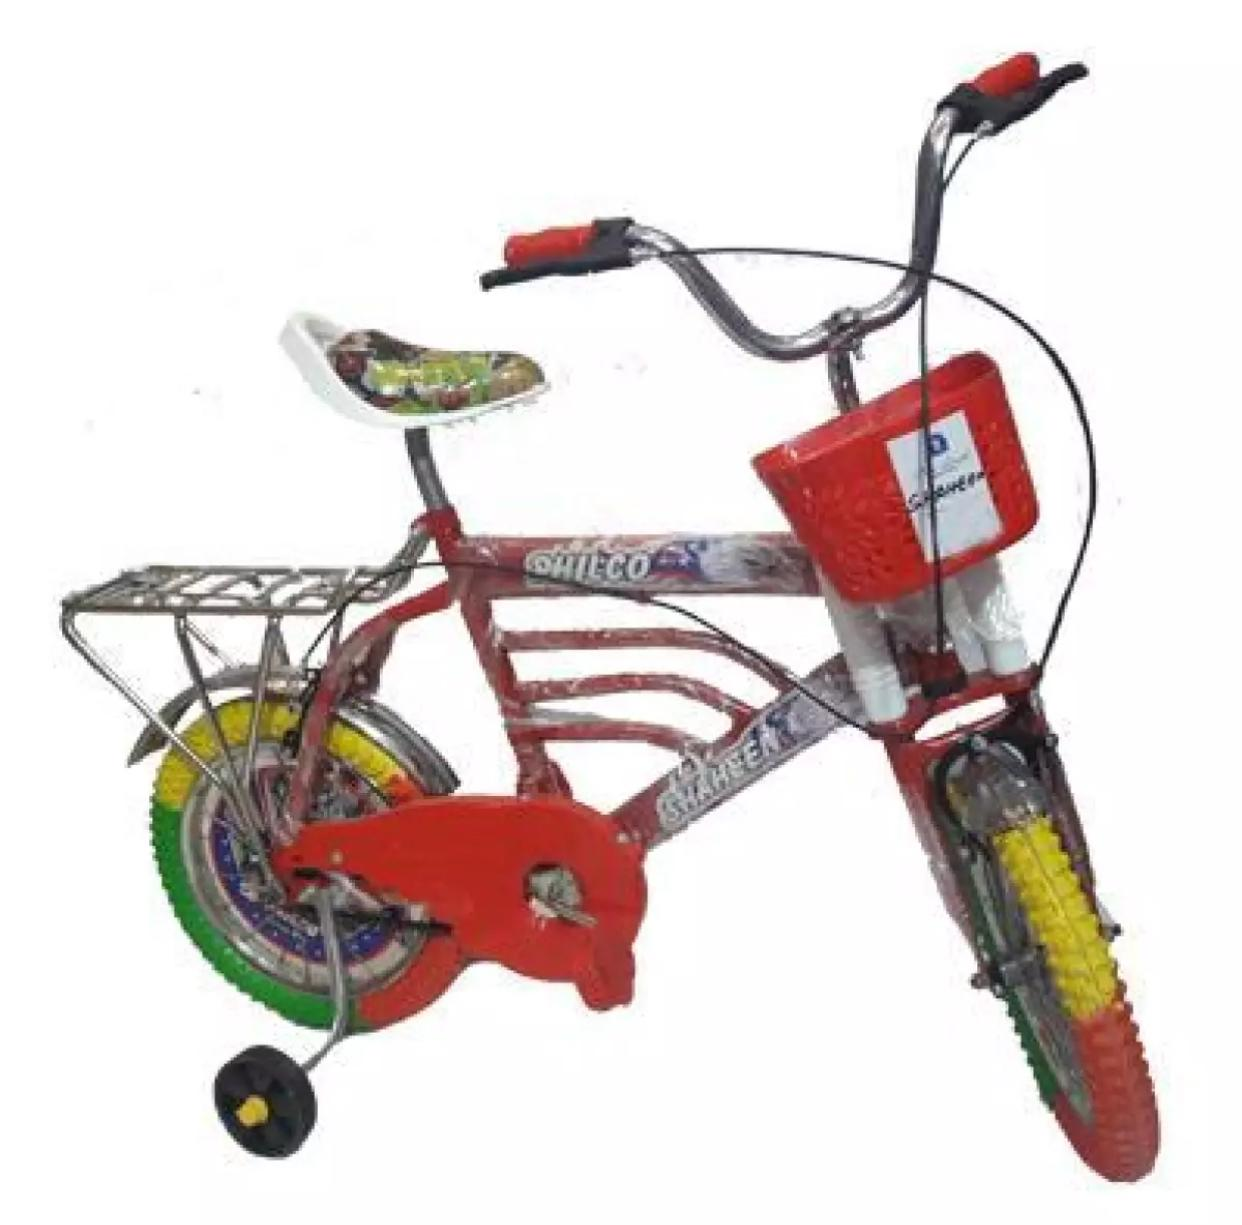 Shaheen 16  Inch Two Wheeler With Brakes Double Chimtta Cycle For Kids Seat adjustable